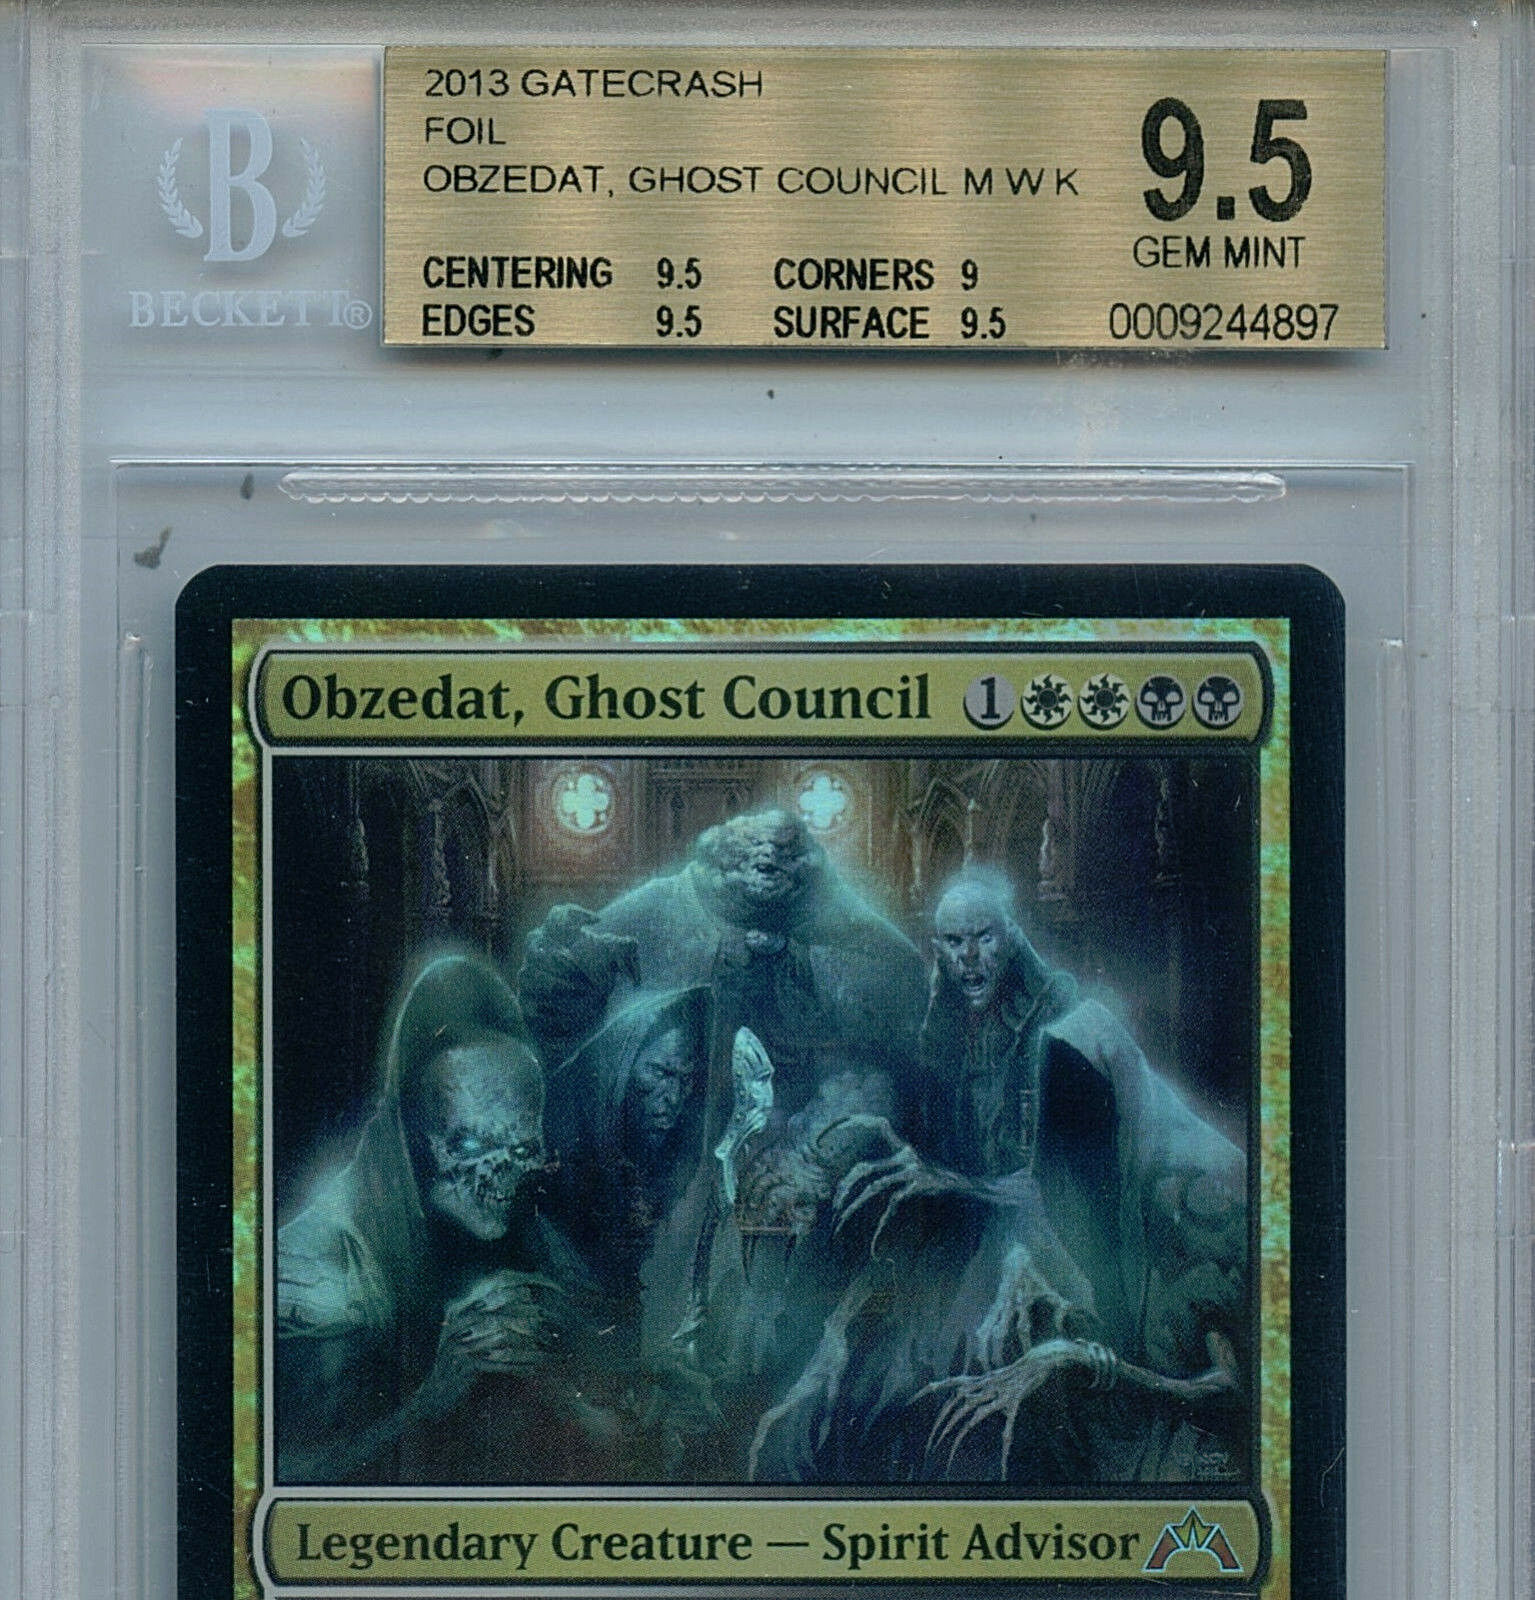 MTG Obzedat Ghost Ghost Ghost Council BGS 9.5 GM Gatecrash Mystic Foil Magic Card  Amricons 780389